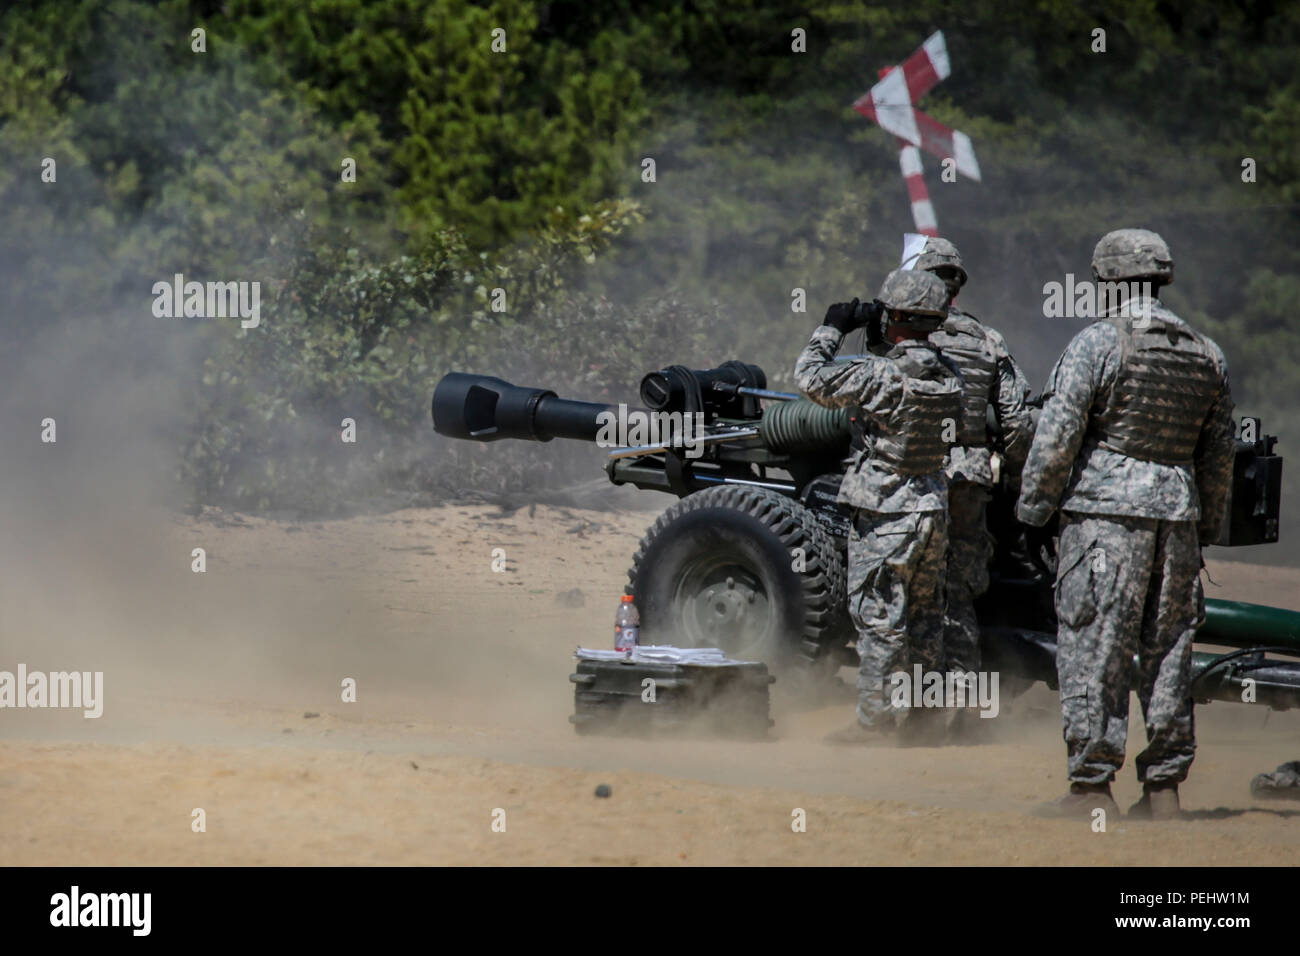 Soldiers from the New Jersey Army National Guard's 3-112th